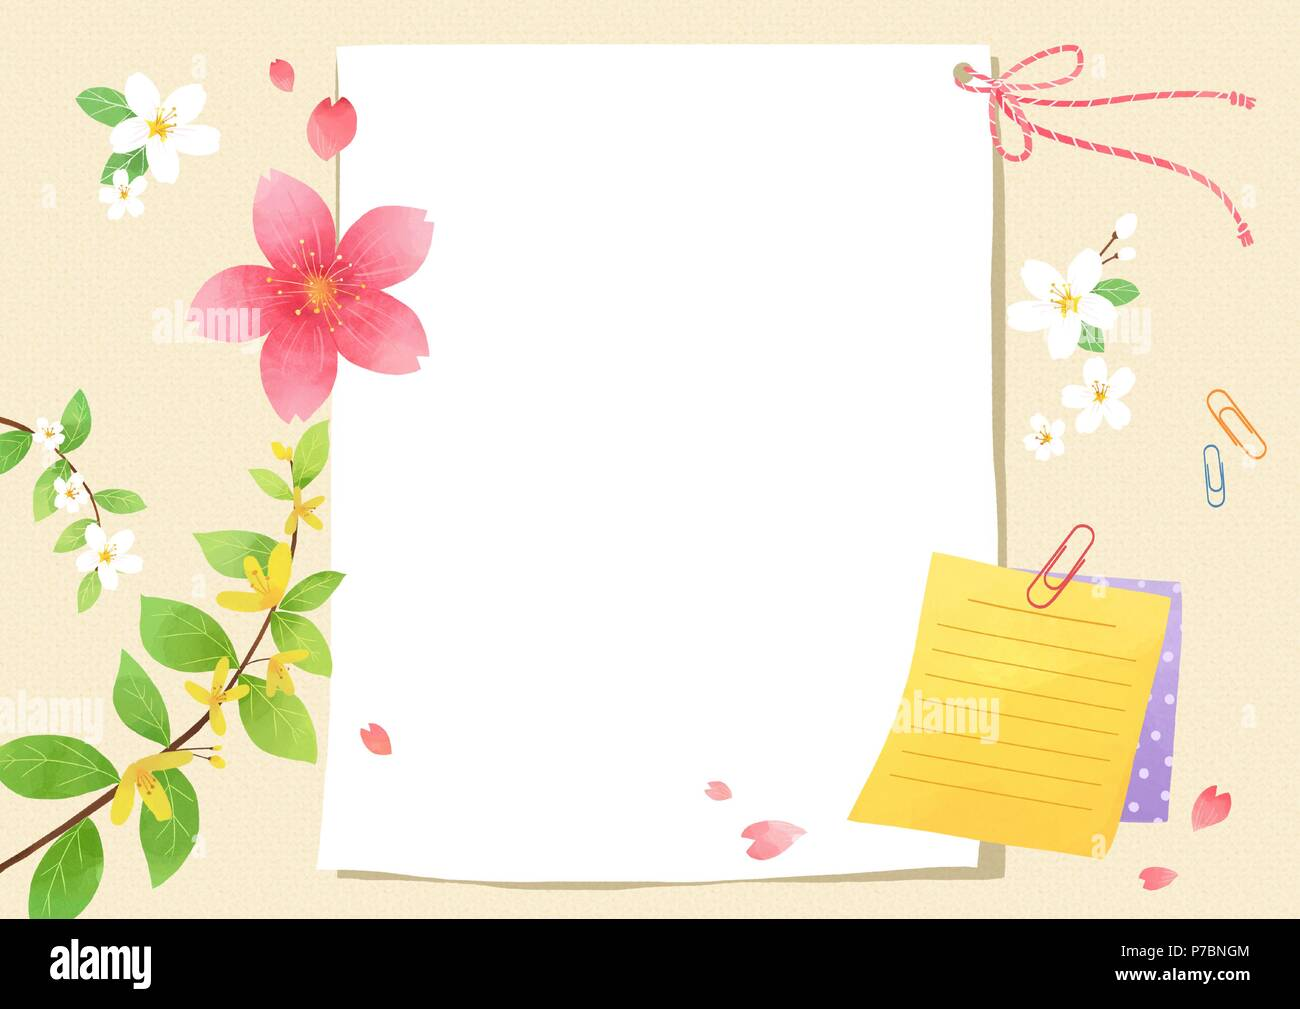 Vector a card template frame border for a text with spring vector a card template frame border for a text with spring elements invitation postcards cards and so on 002 stopboris Choice Image